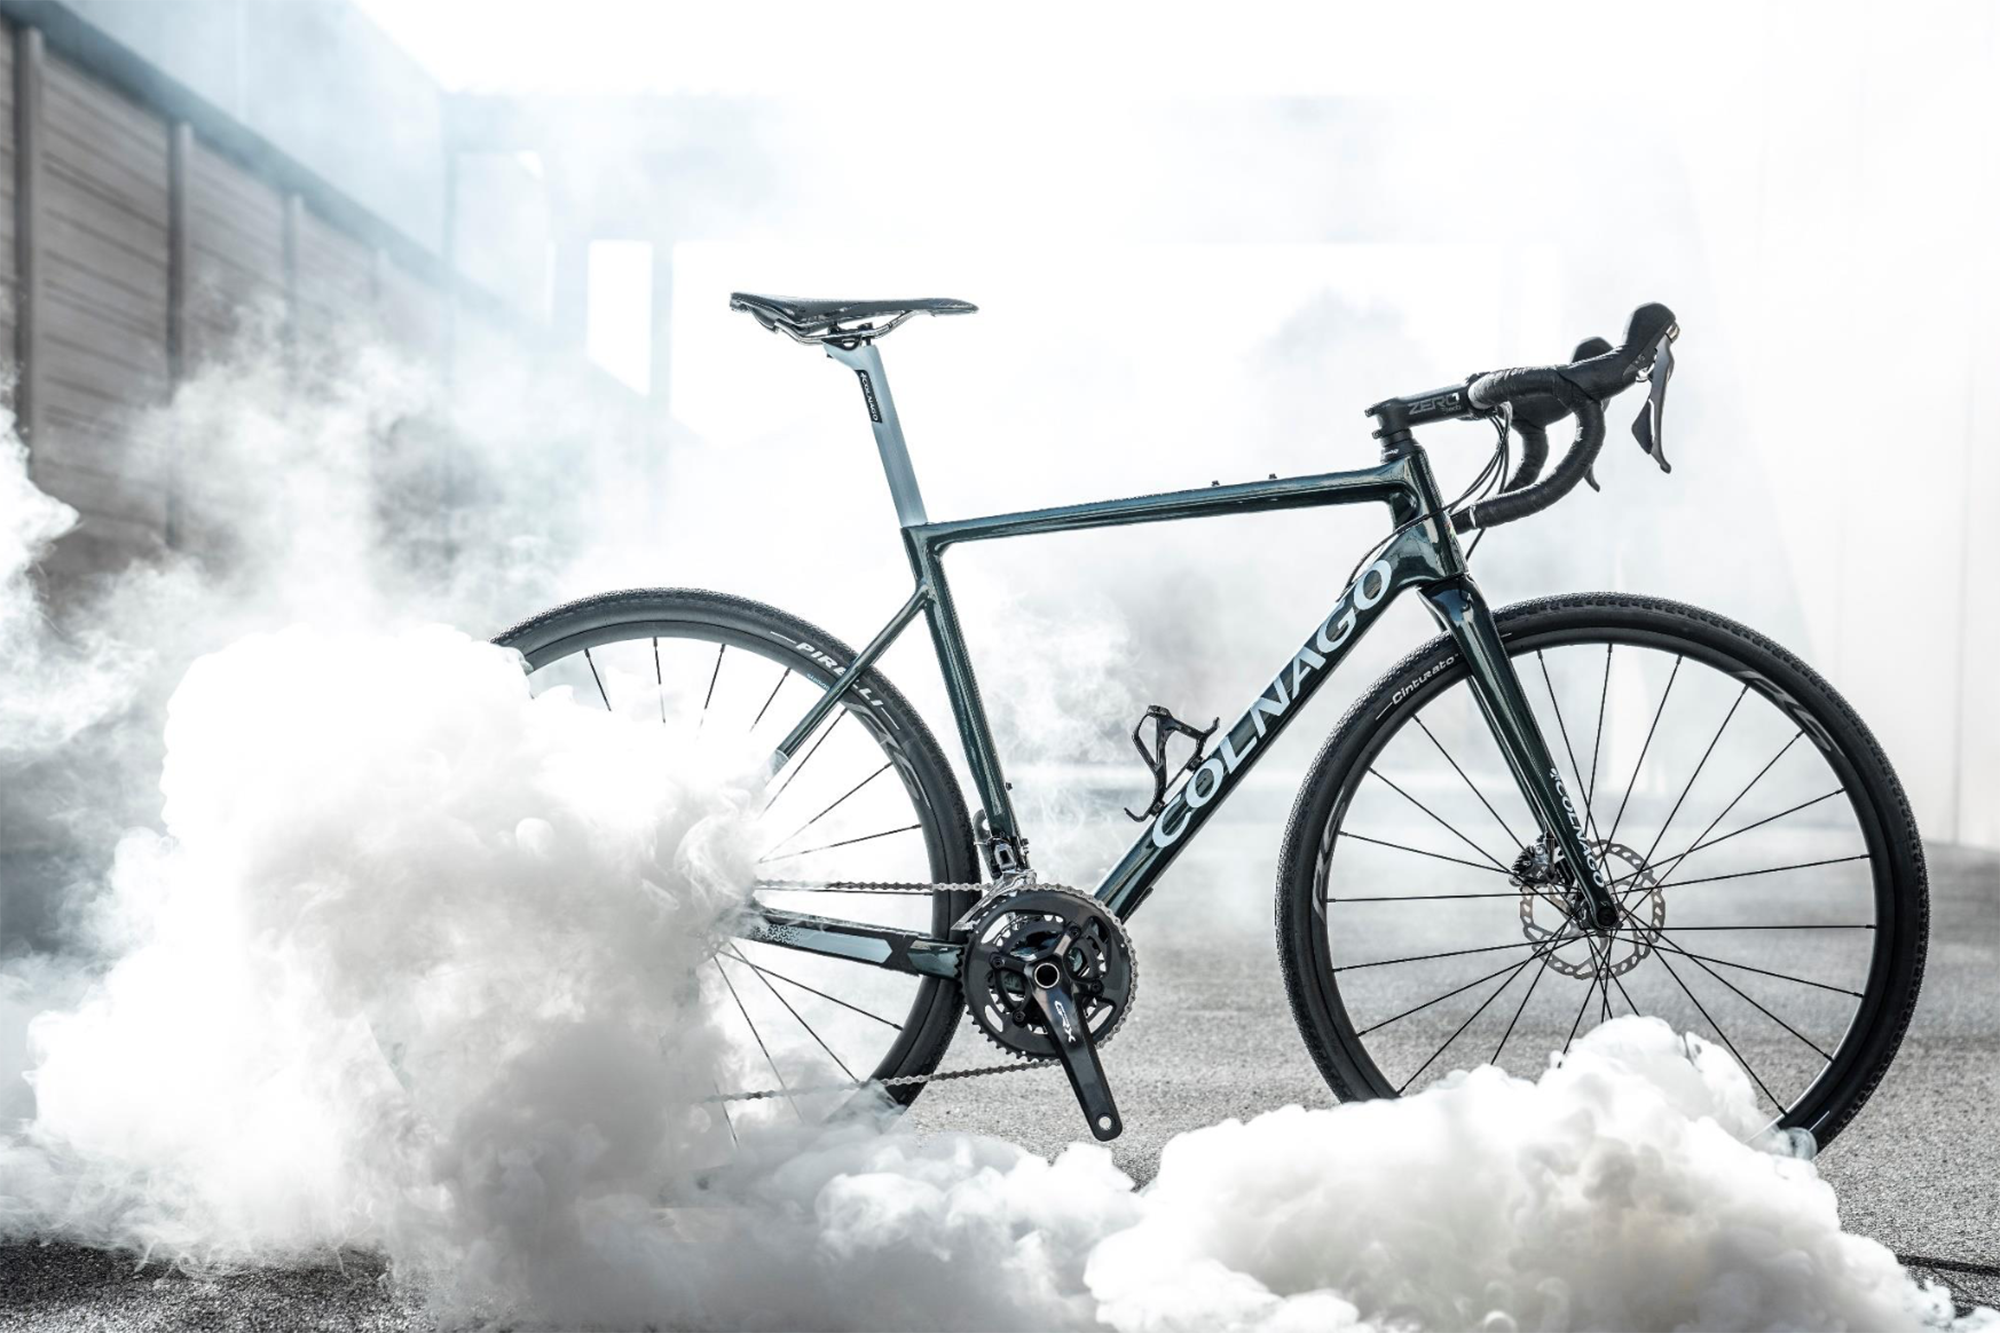 Colnago enters the gravel market with the new G3X